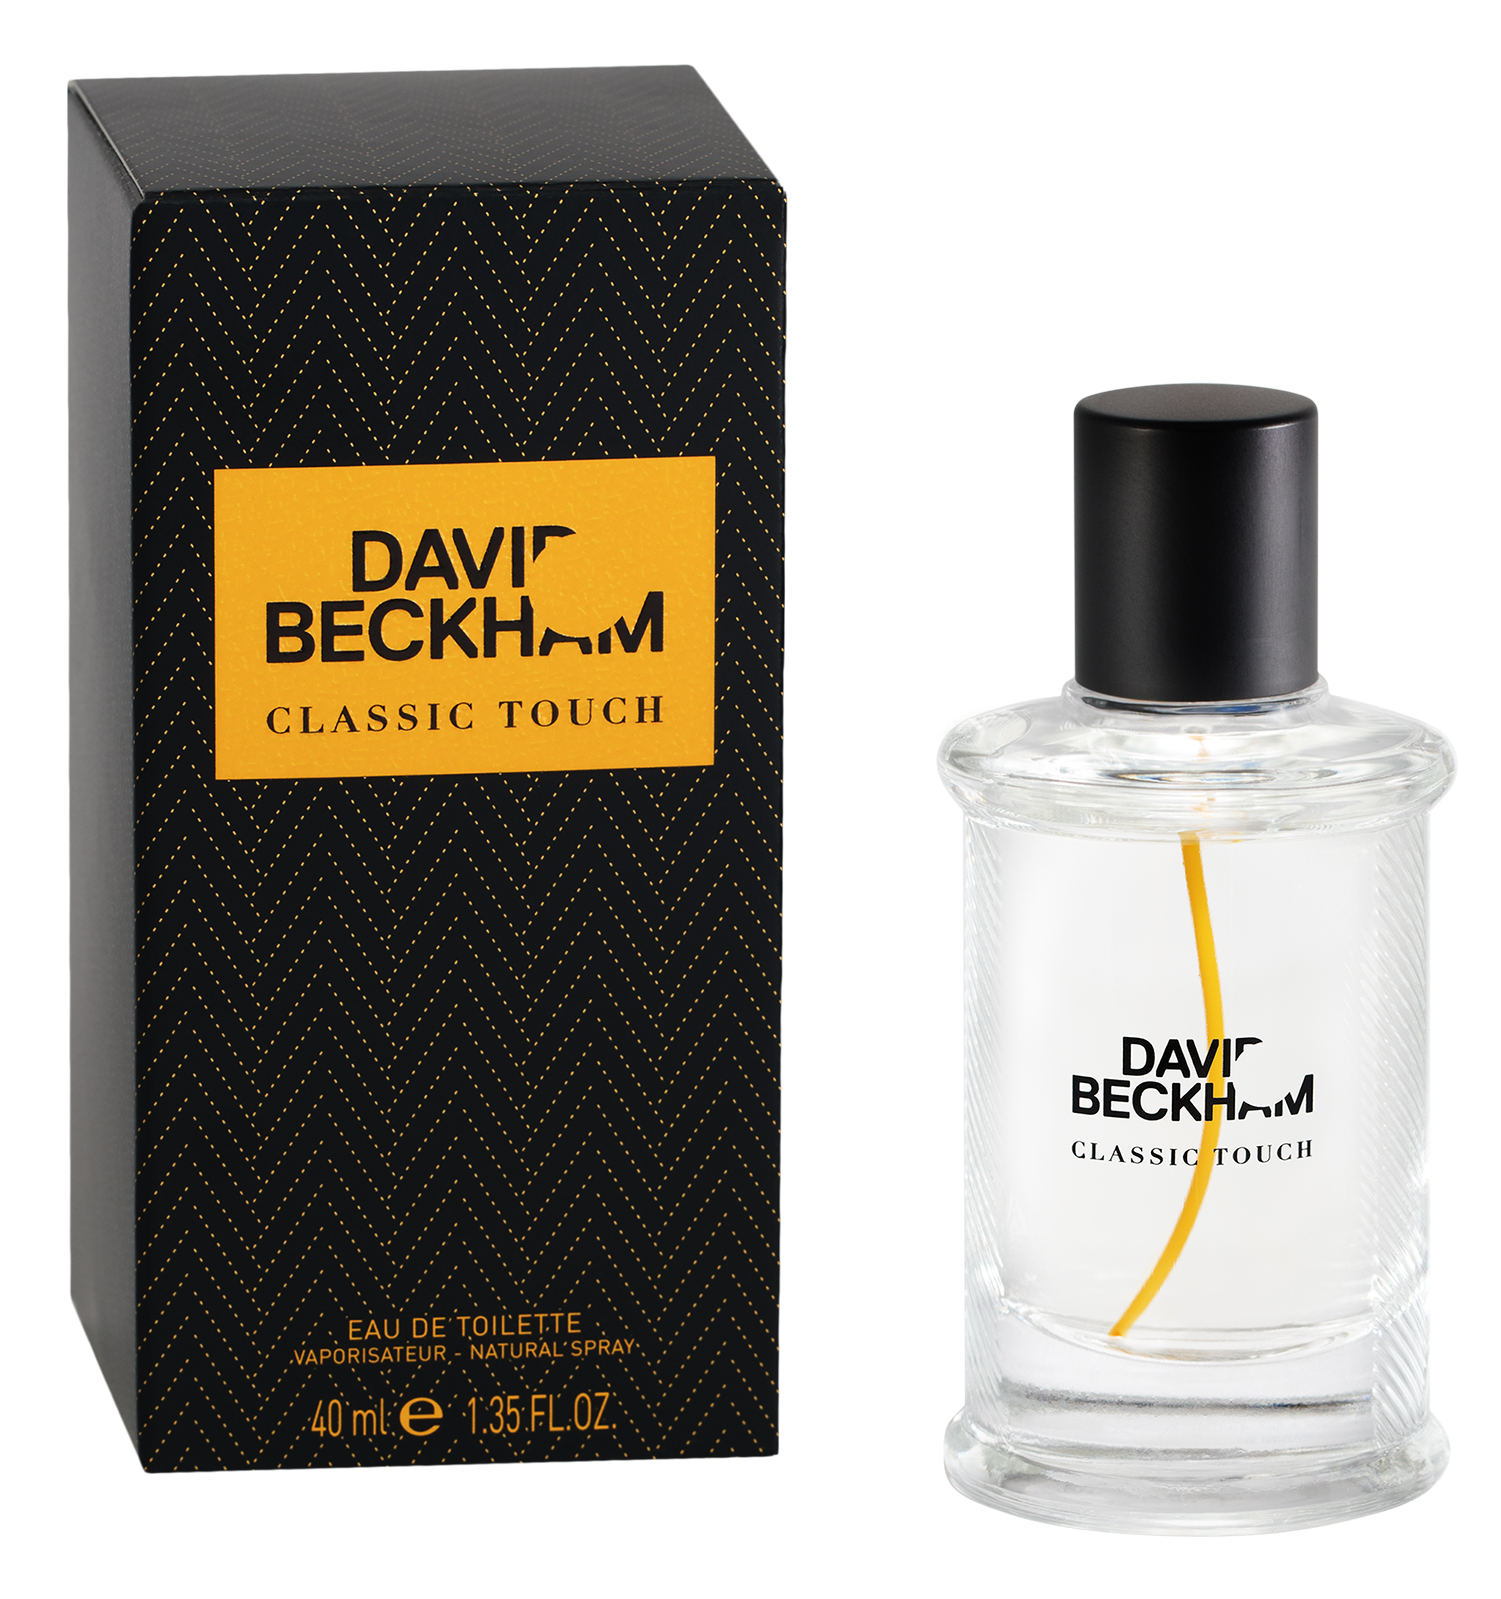 a9b8f38d8d47 Classic Touch David Beckham cologne - a new fragrance for men 2018